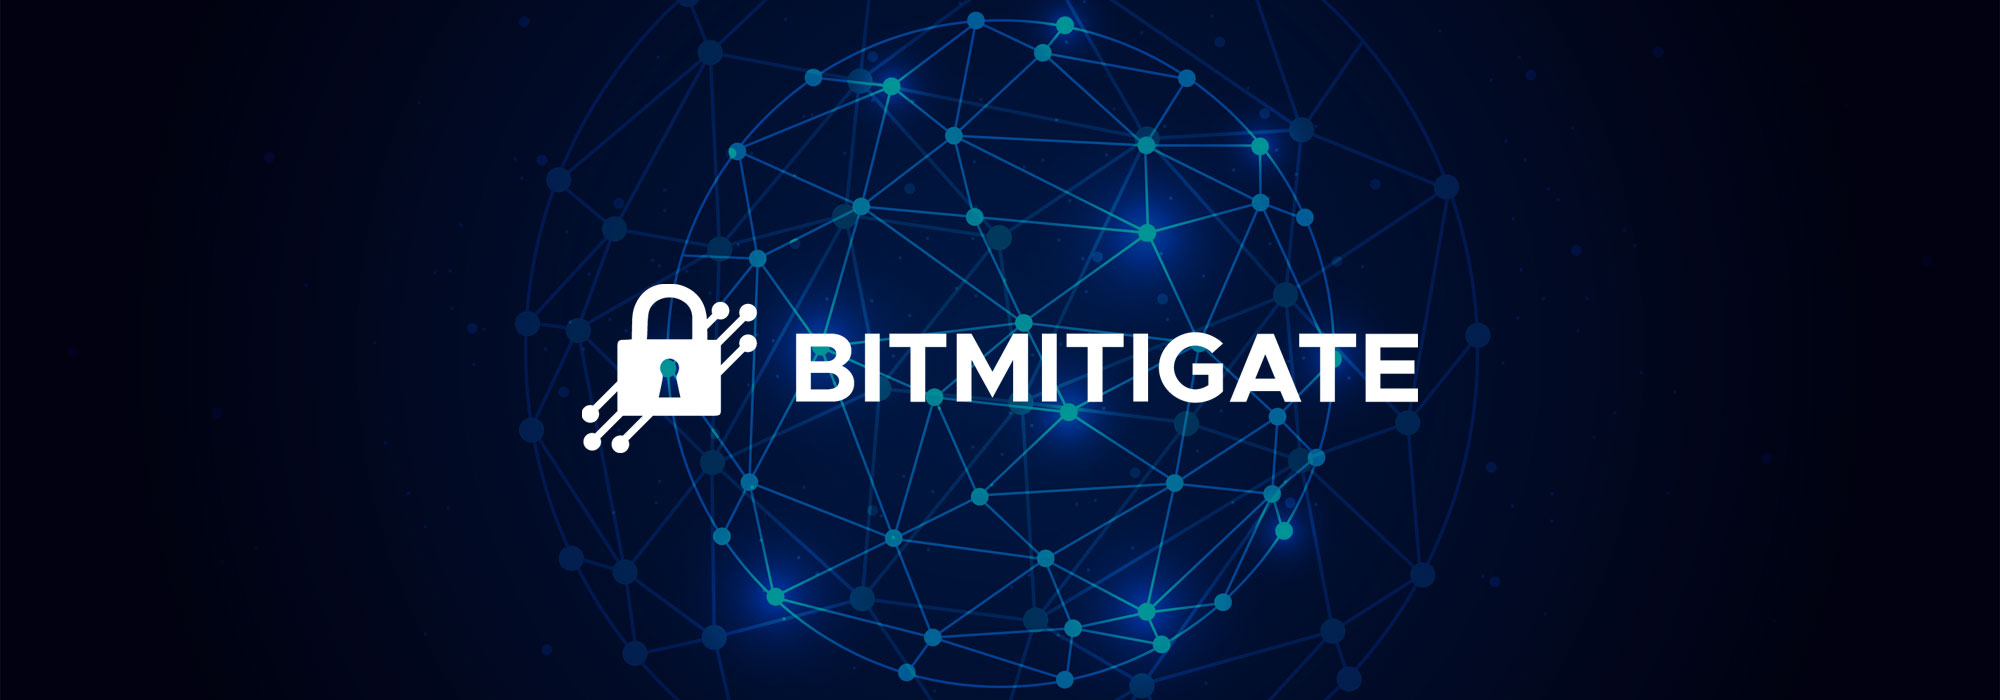 Epik announces acquisition of BitMitigate.com